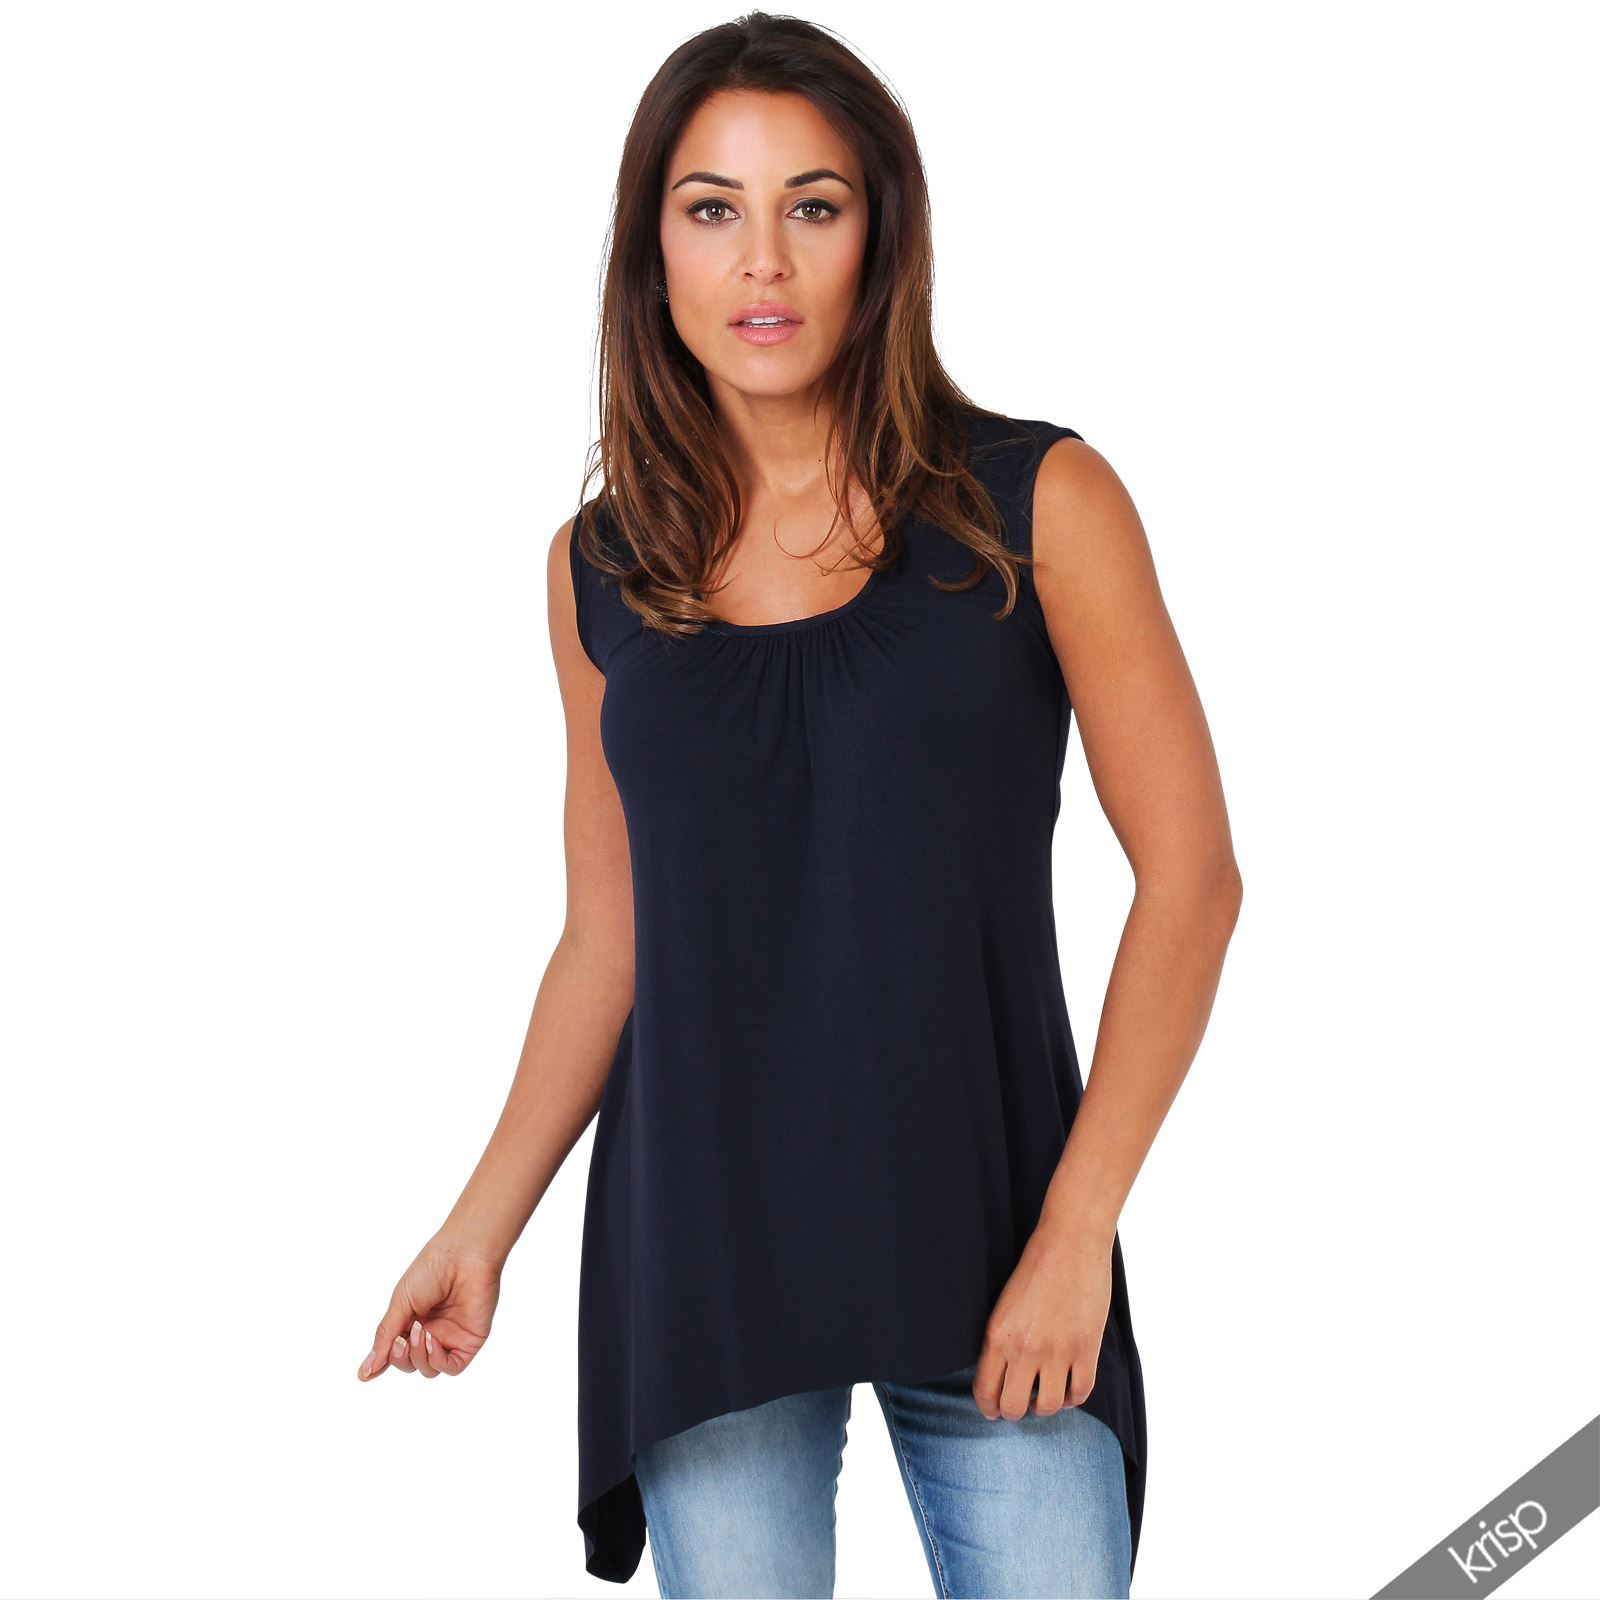 women long top sleeveless pleated tee shirt tunic jersey stretch loose fit ebay. Black Bedroom Furniture Sets. Home Design Ideas